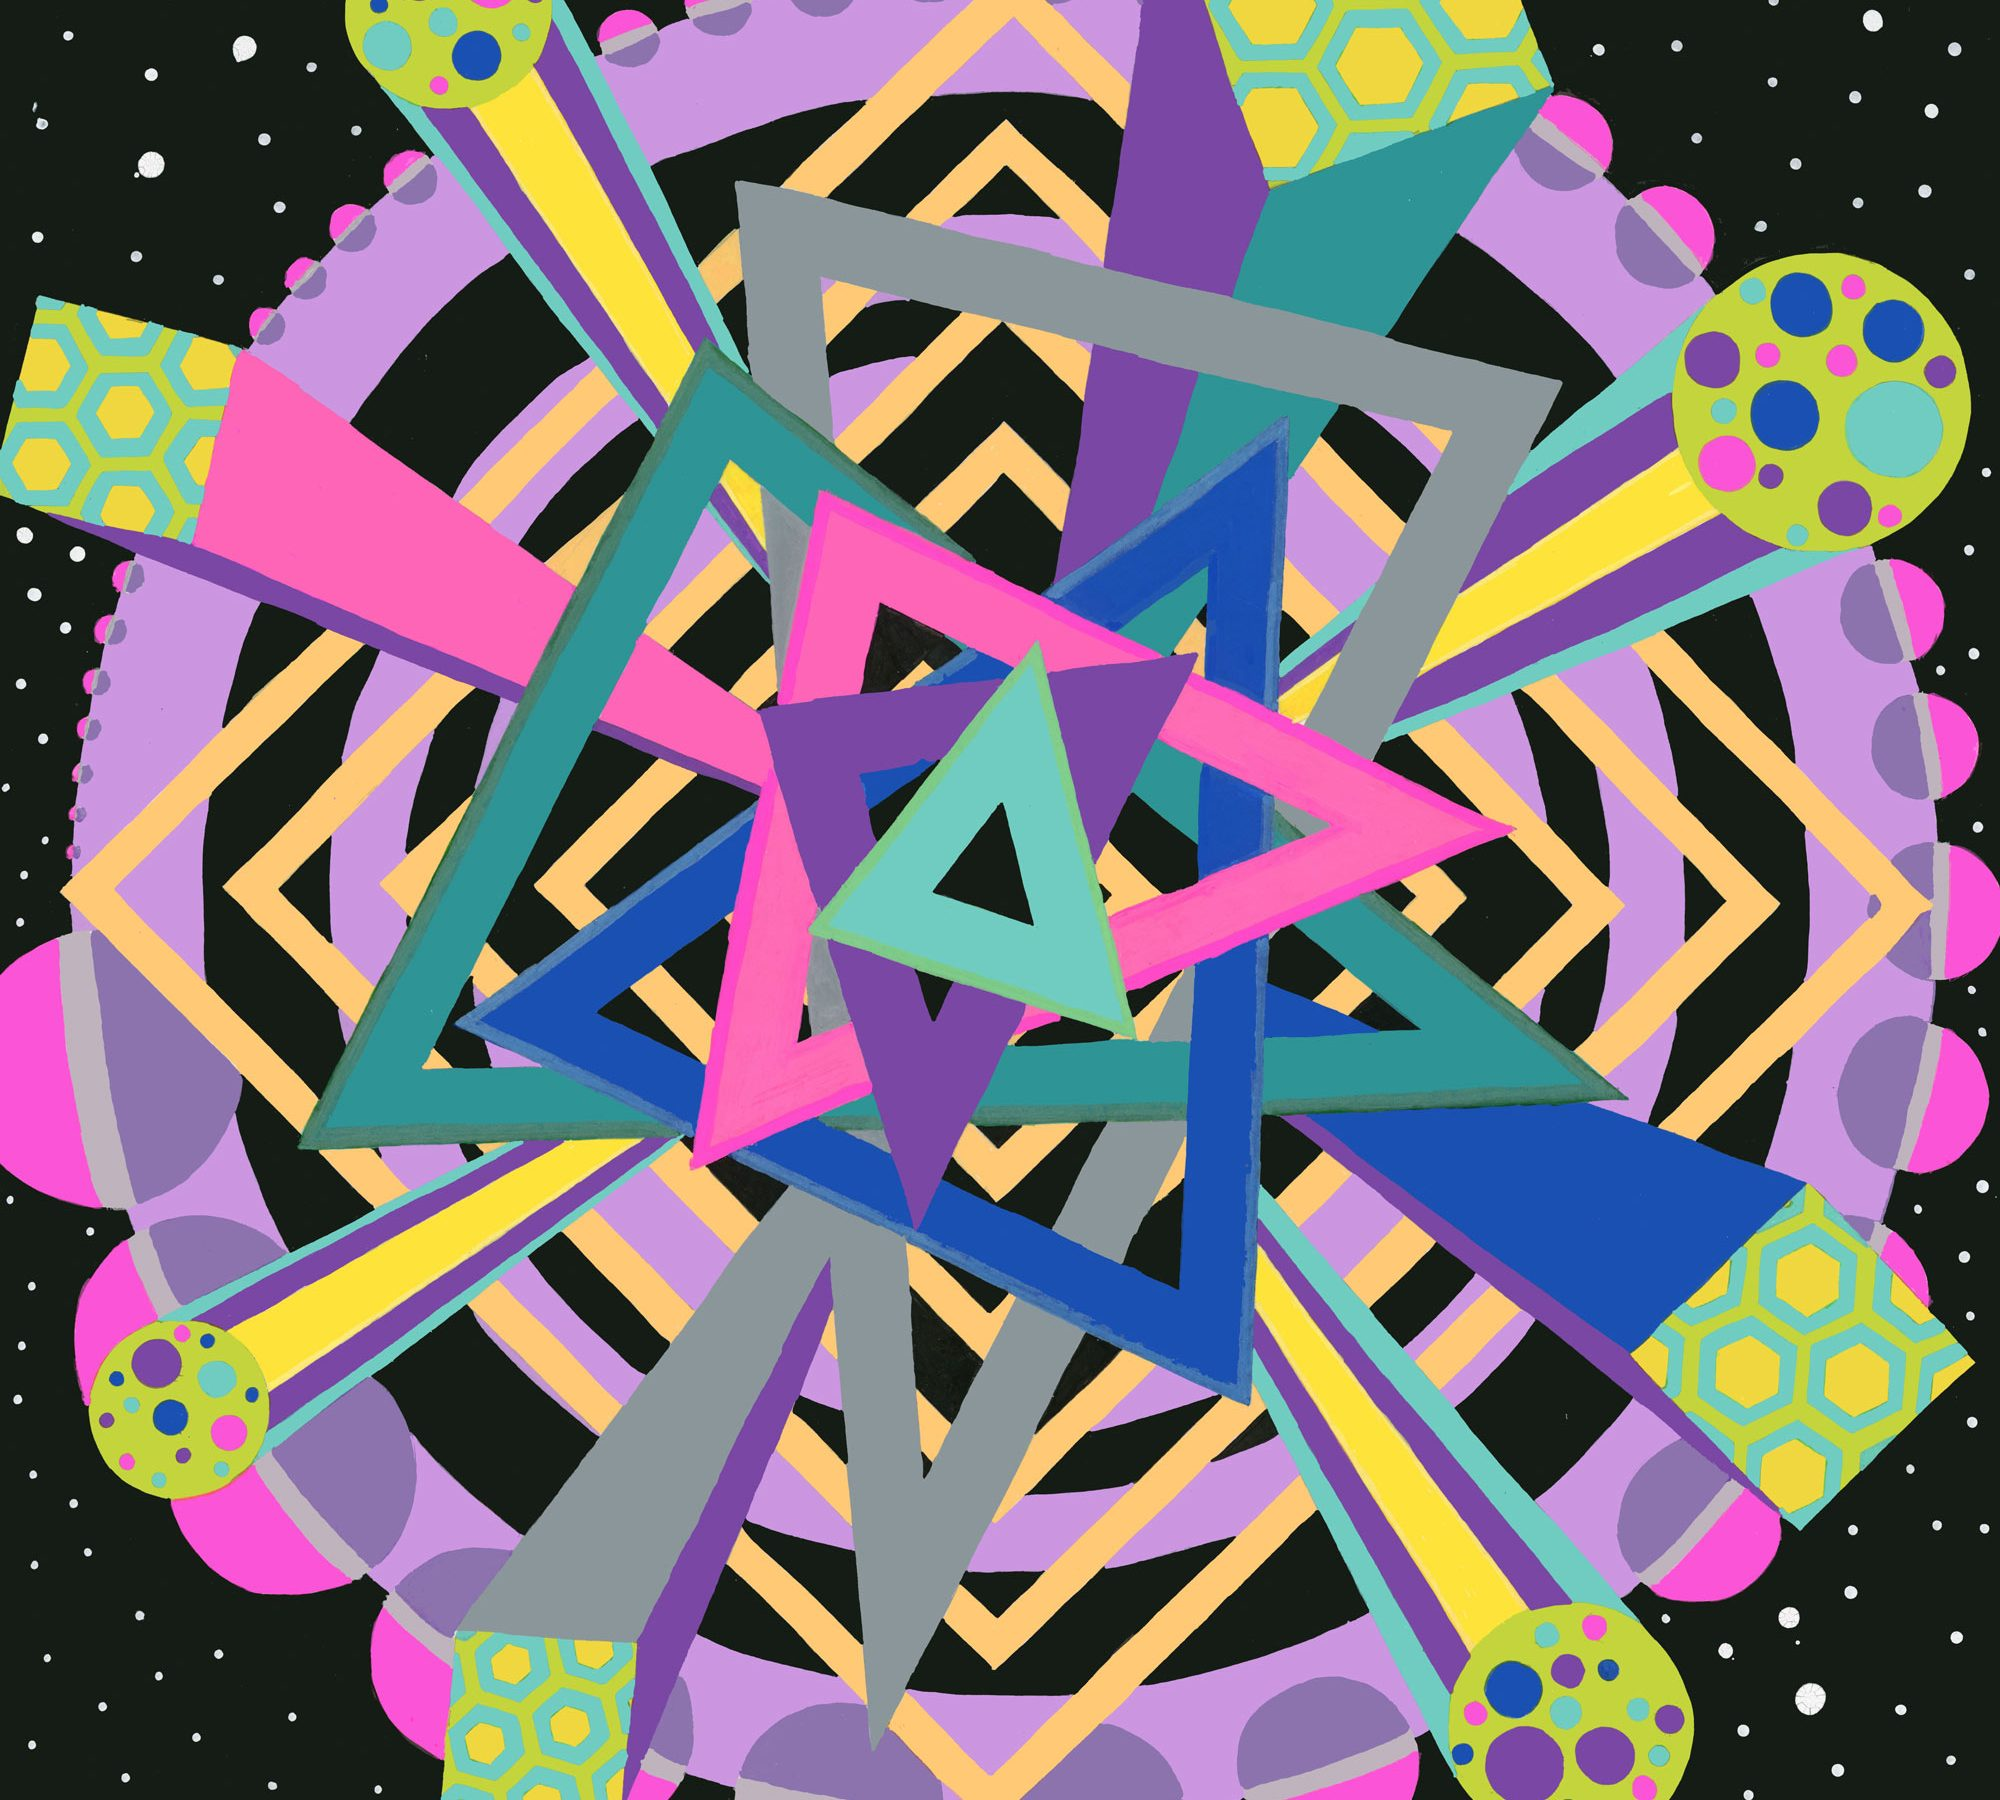 Mesmerize/Hypnotize is an art piece produced by Chris Freyer in 2018